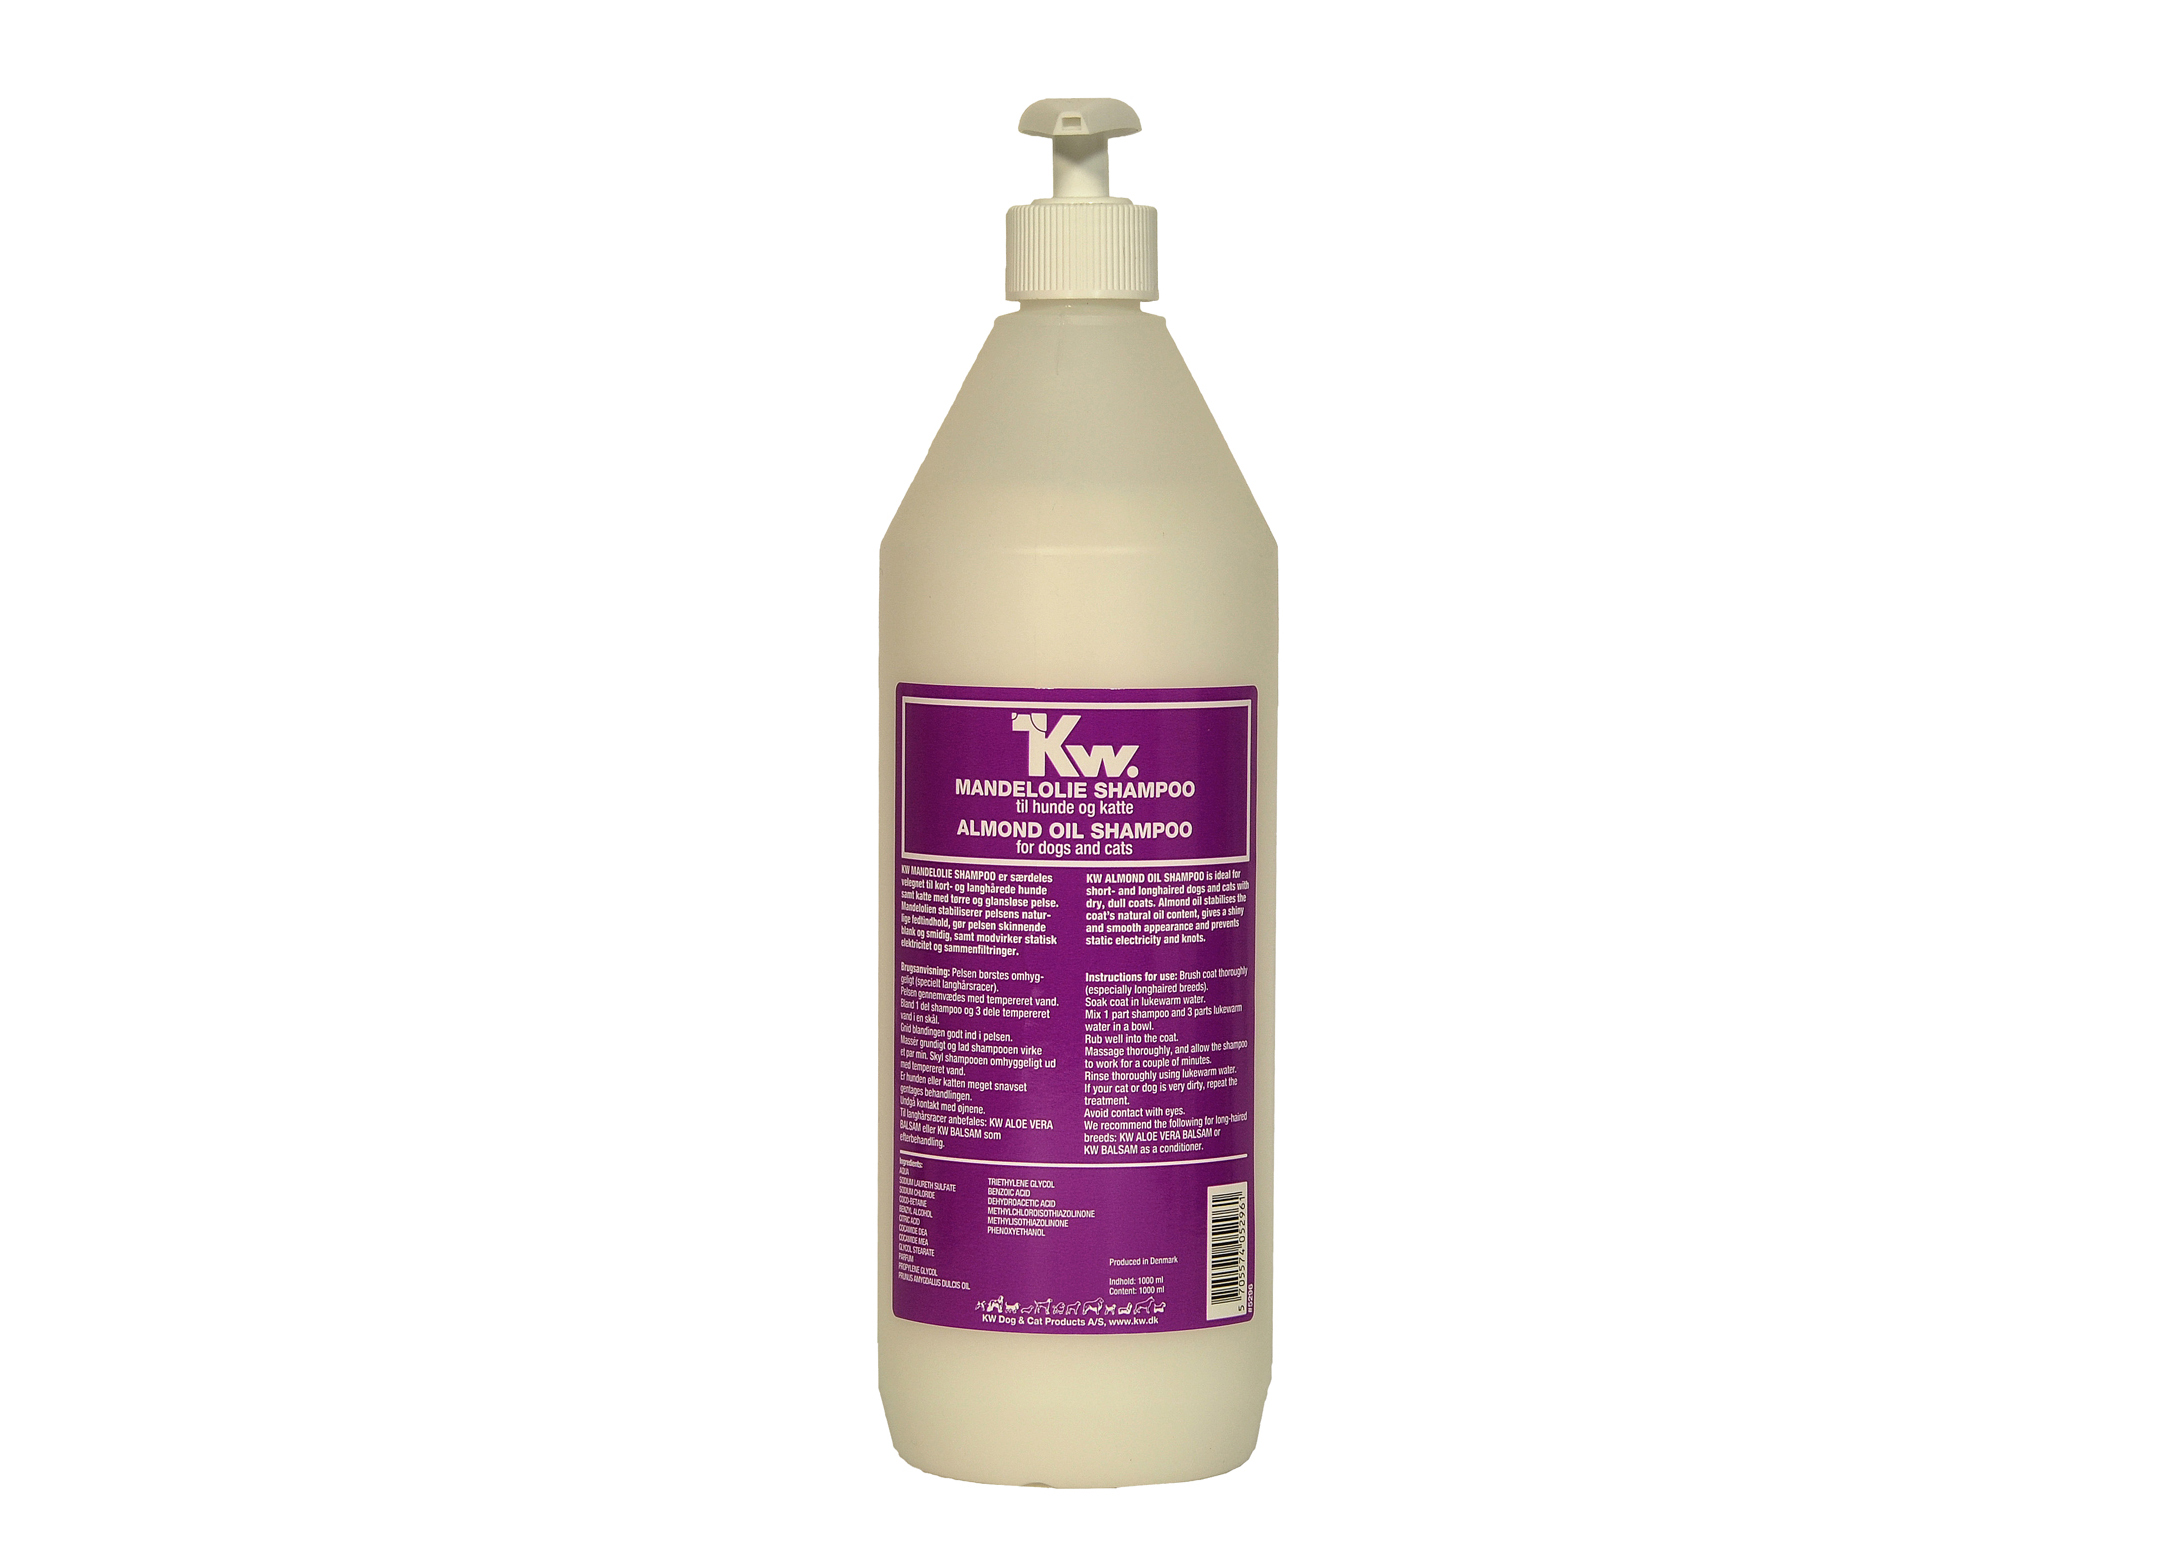 KW Almond Oil Shampooing 1L